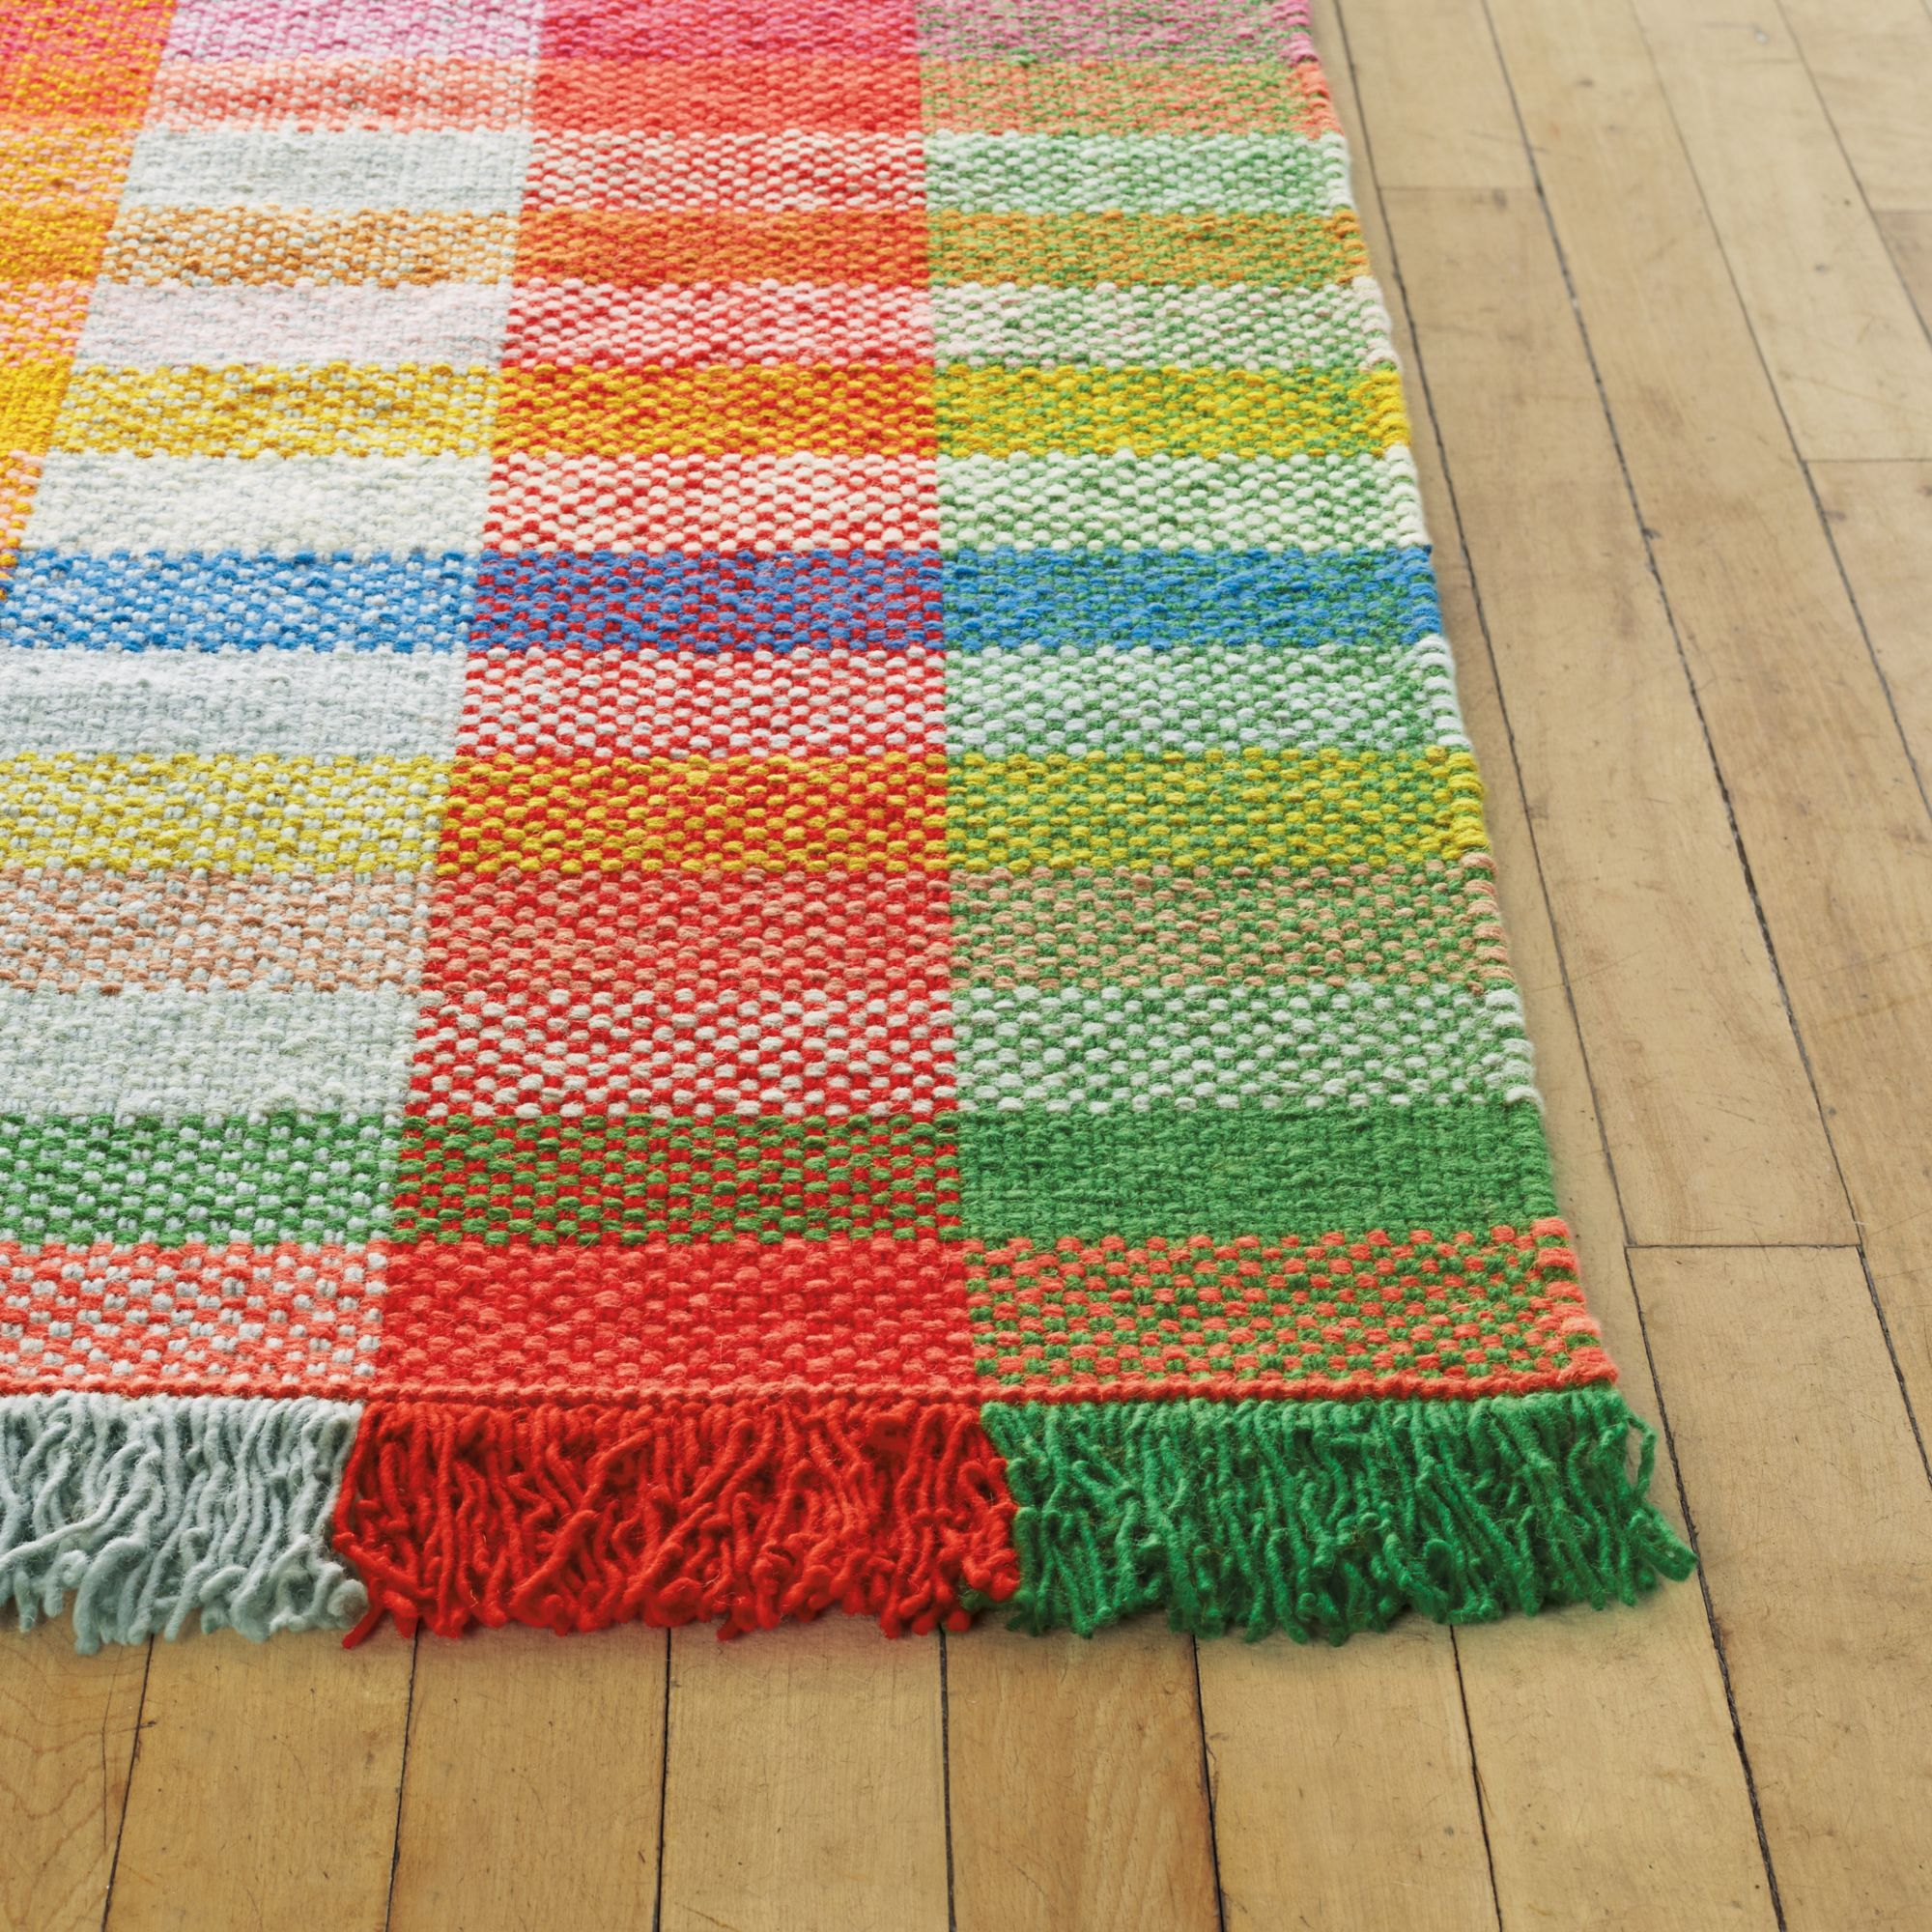 Multitone Rug Carpets Rugs Modern Rugs Home Decor